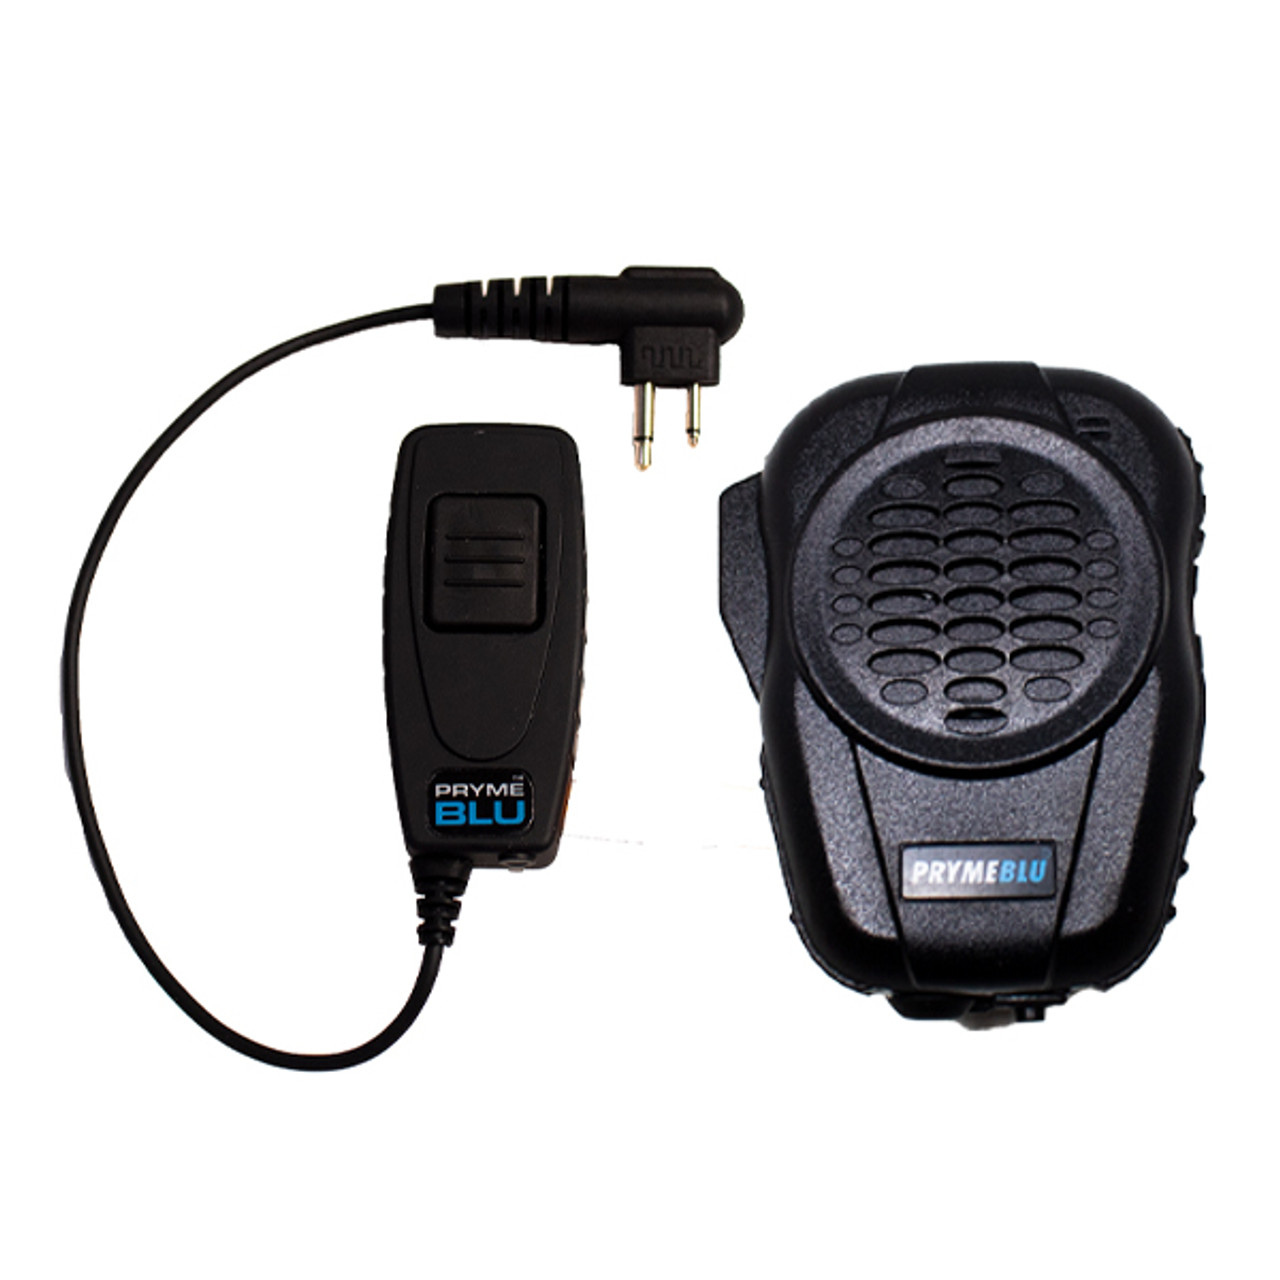 Wired Fox Bluetooth Speaker Mic Kit for Motorola Two Way Radios with 2 Pin Accessory Ports